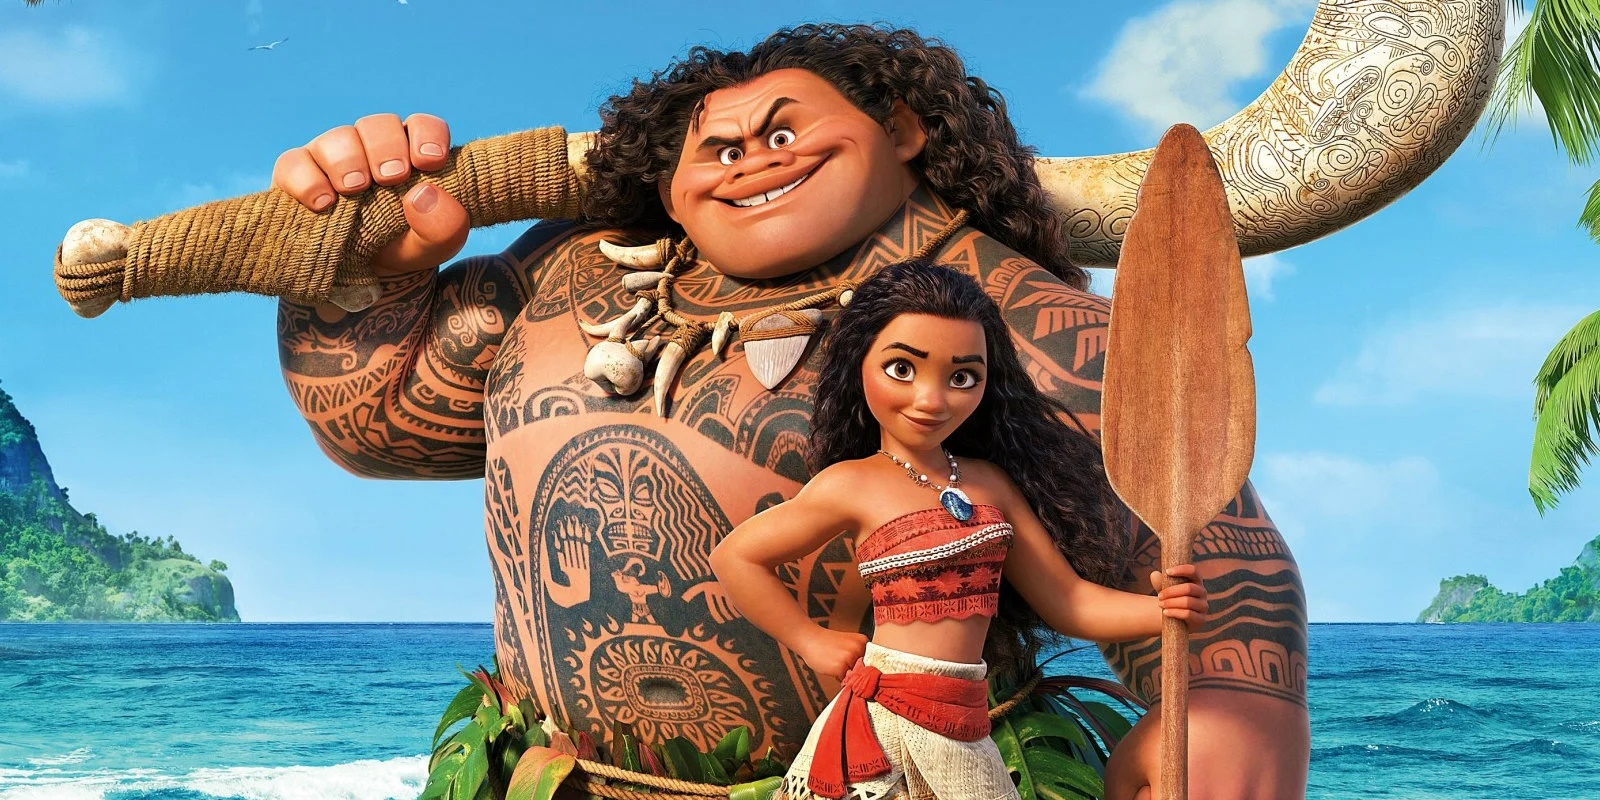 Moana 2 Trailer, Release Date, Cast, Plot Spoilers Disney working on the Sequel with Dwayne Johnson